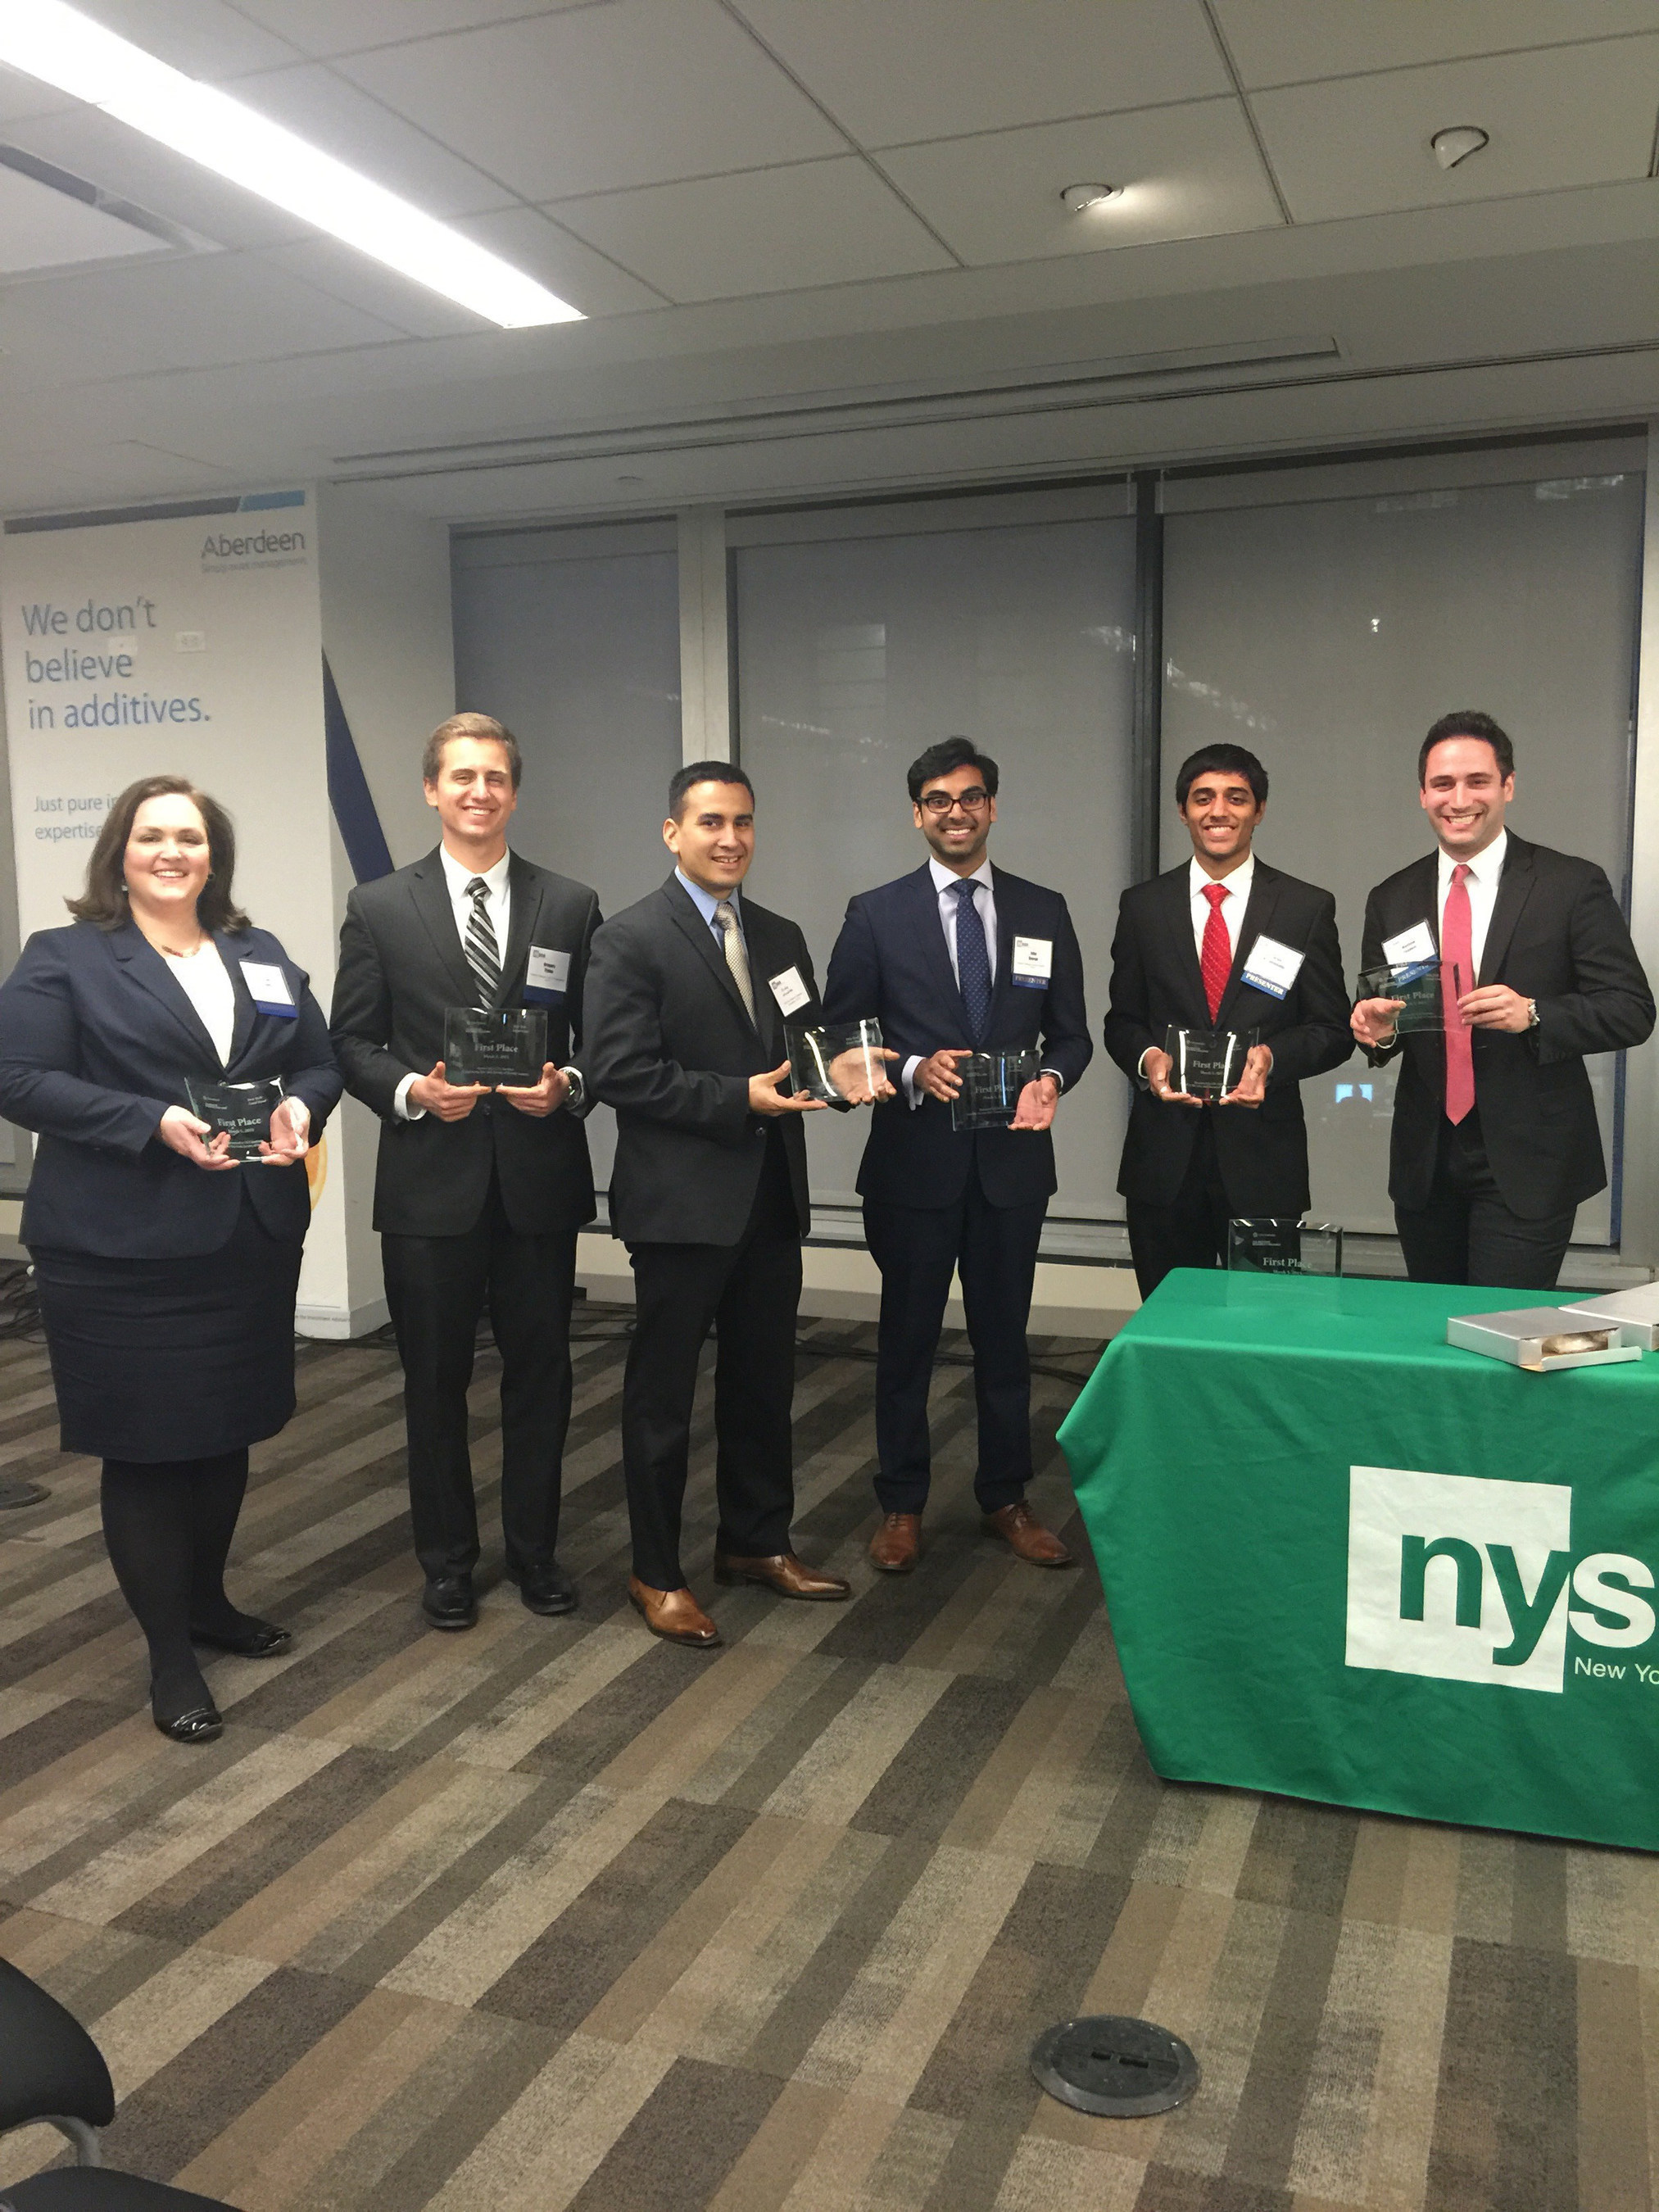 Two students in the Part-Time MBA Program, Matt Fishbein and Susan Smith, helped Rutgers Business School capture the regional Championship of the CFA Investment Research Challenge in 2015.